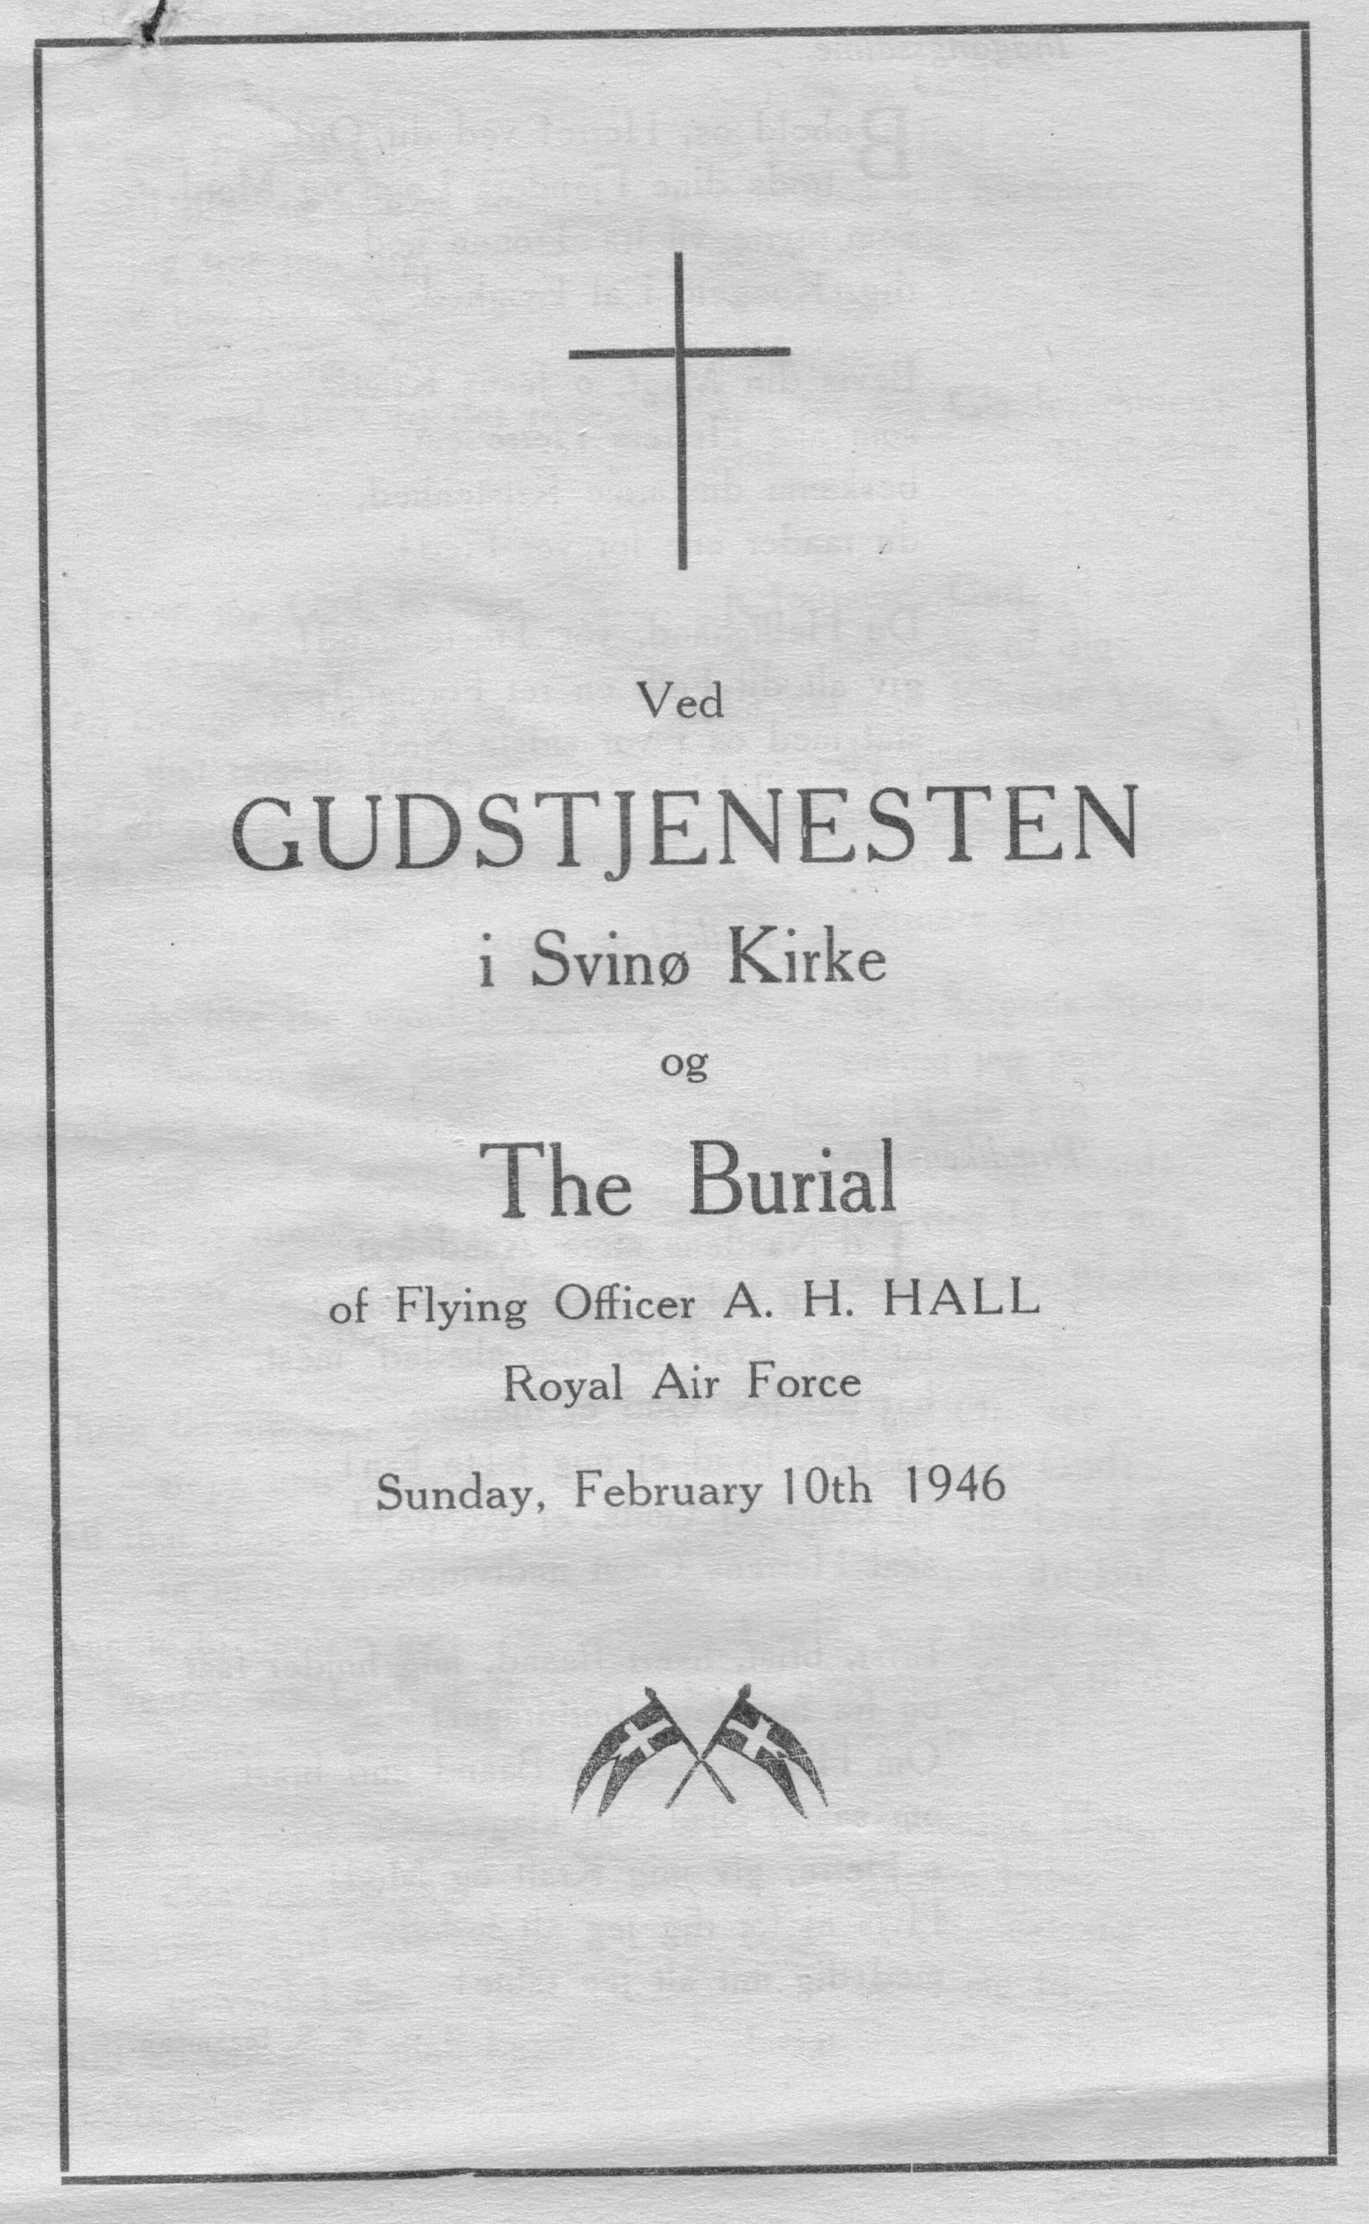 Image Front Page of Program for Funeral of RAF Airman A.H. Hall